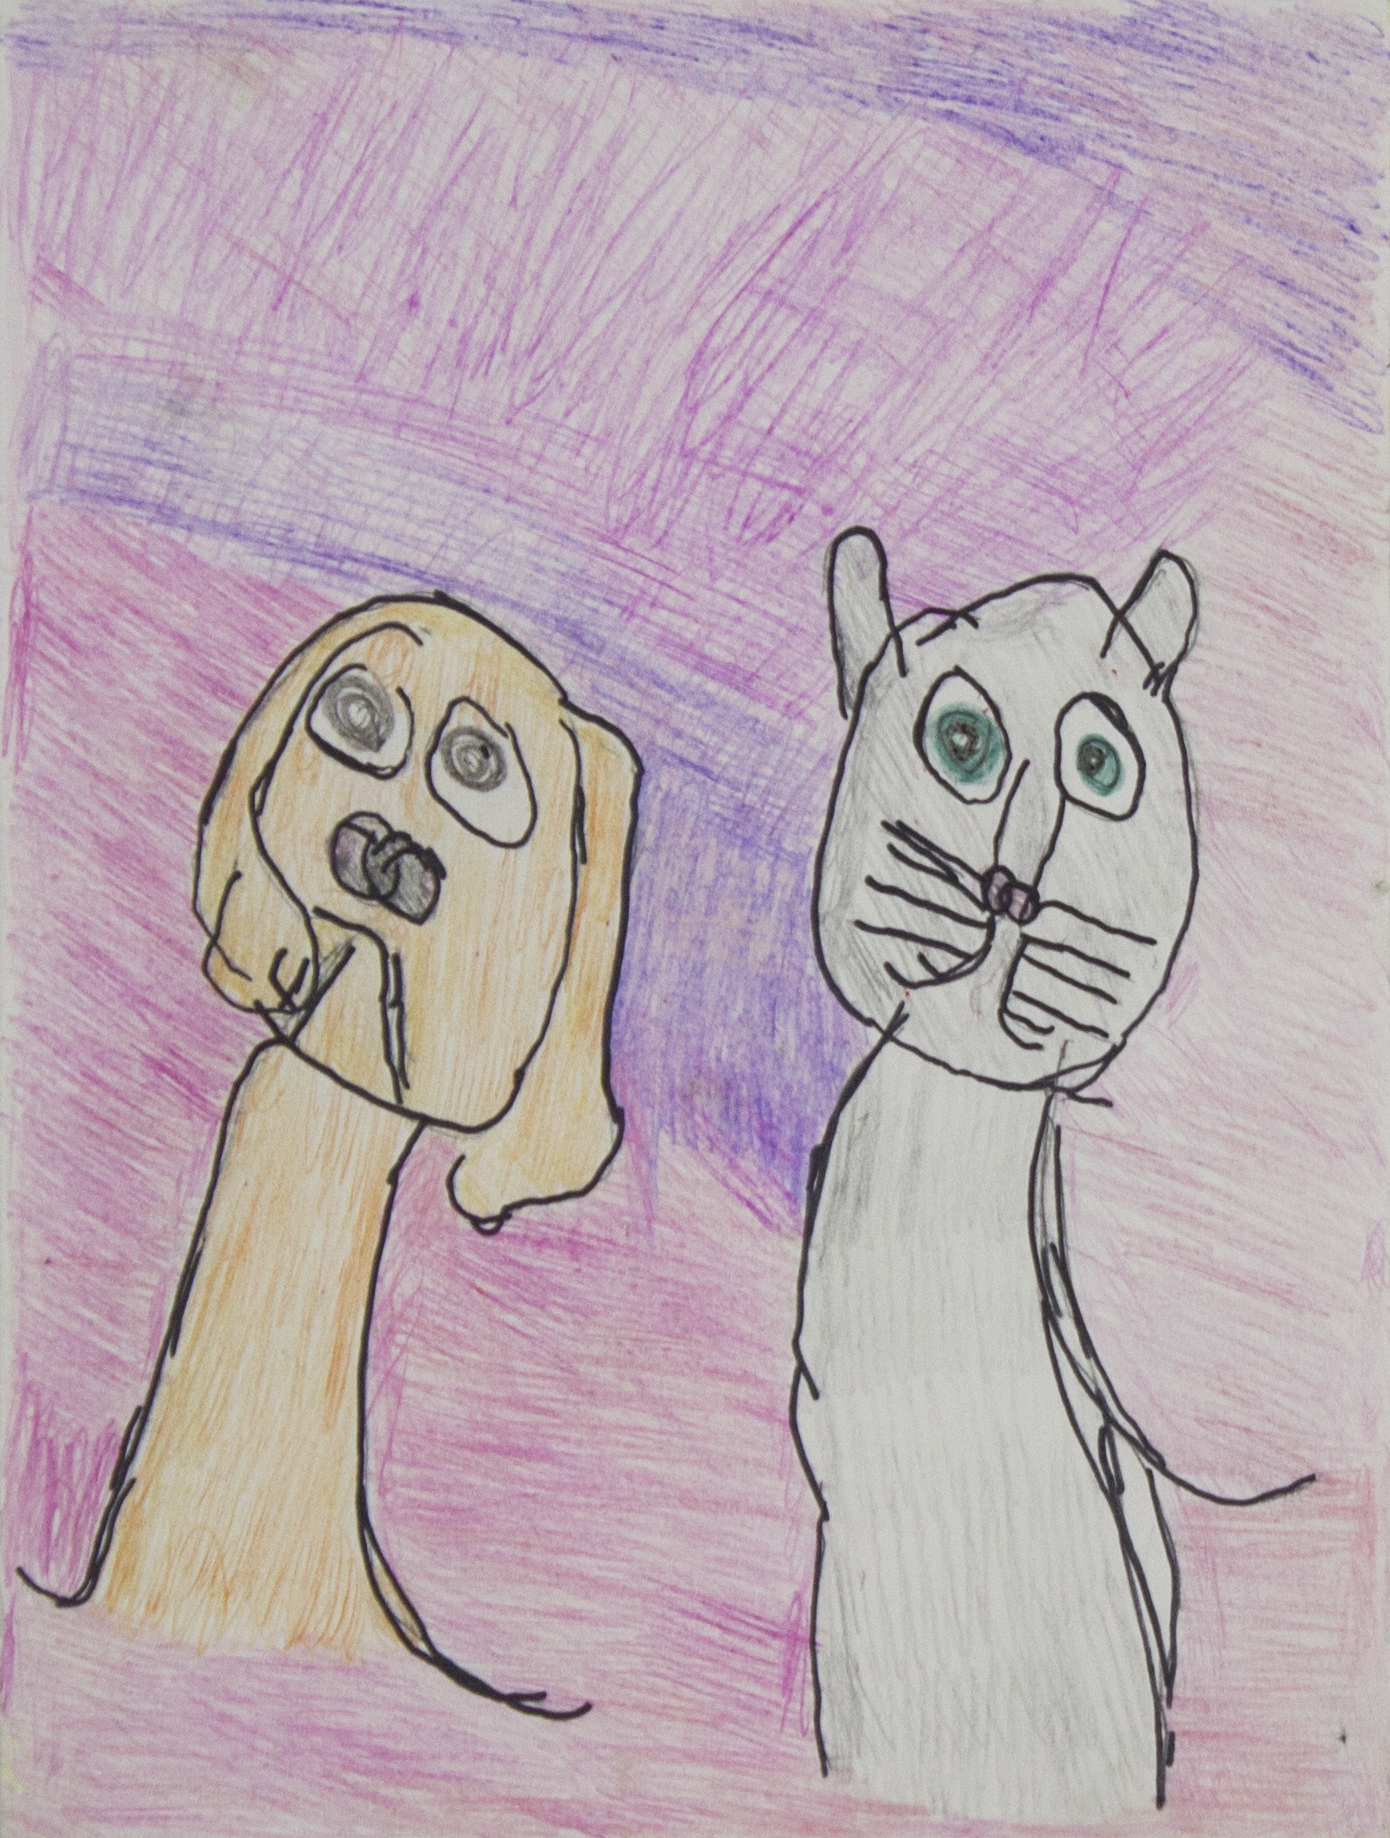 "Cats . 2018. Colored pencil on bristol paper. 9"" x 12"" matted."